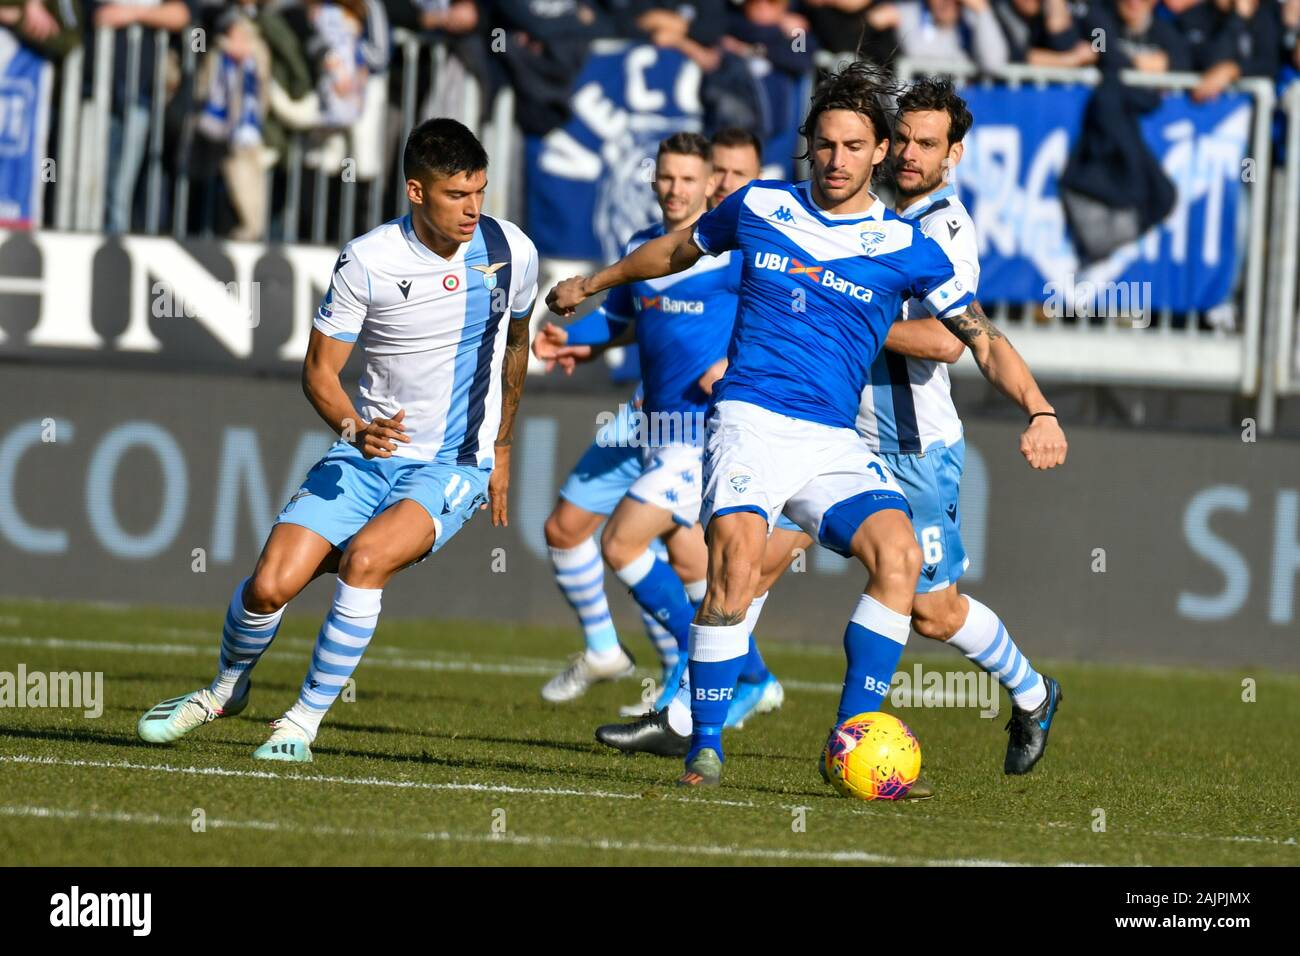 Brescia Italy 05 Jan 2020 Joaquin Correa Of Ss Lazio And Ernesto Torregrossa Of Brescia Calcio